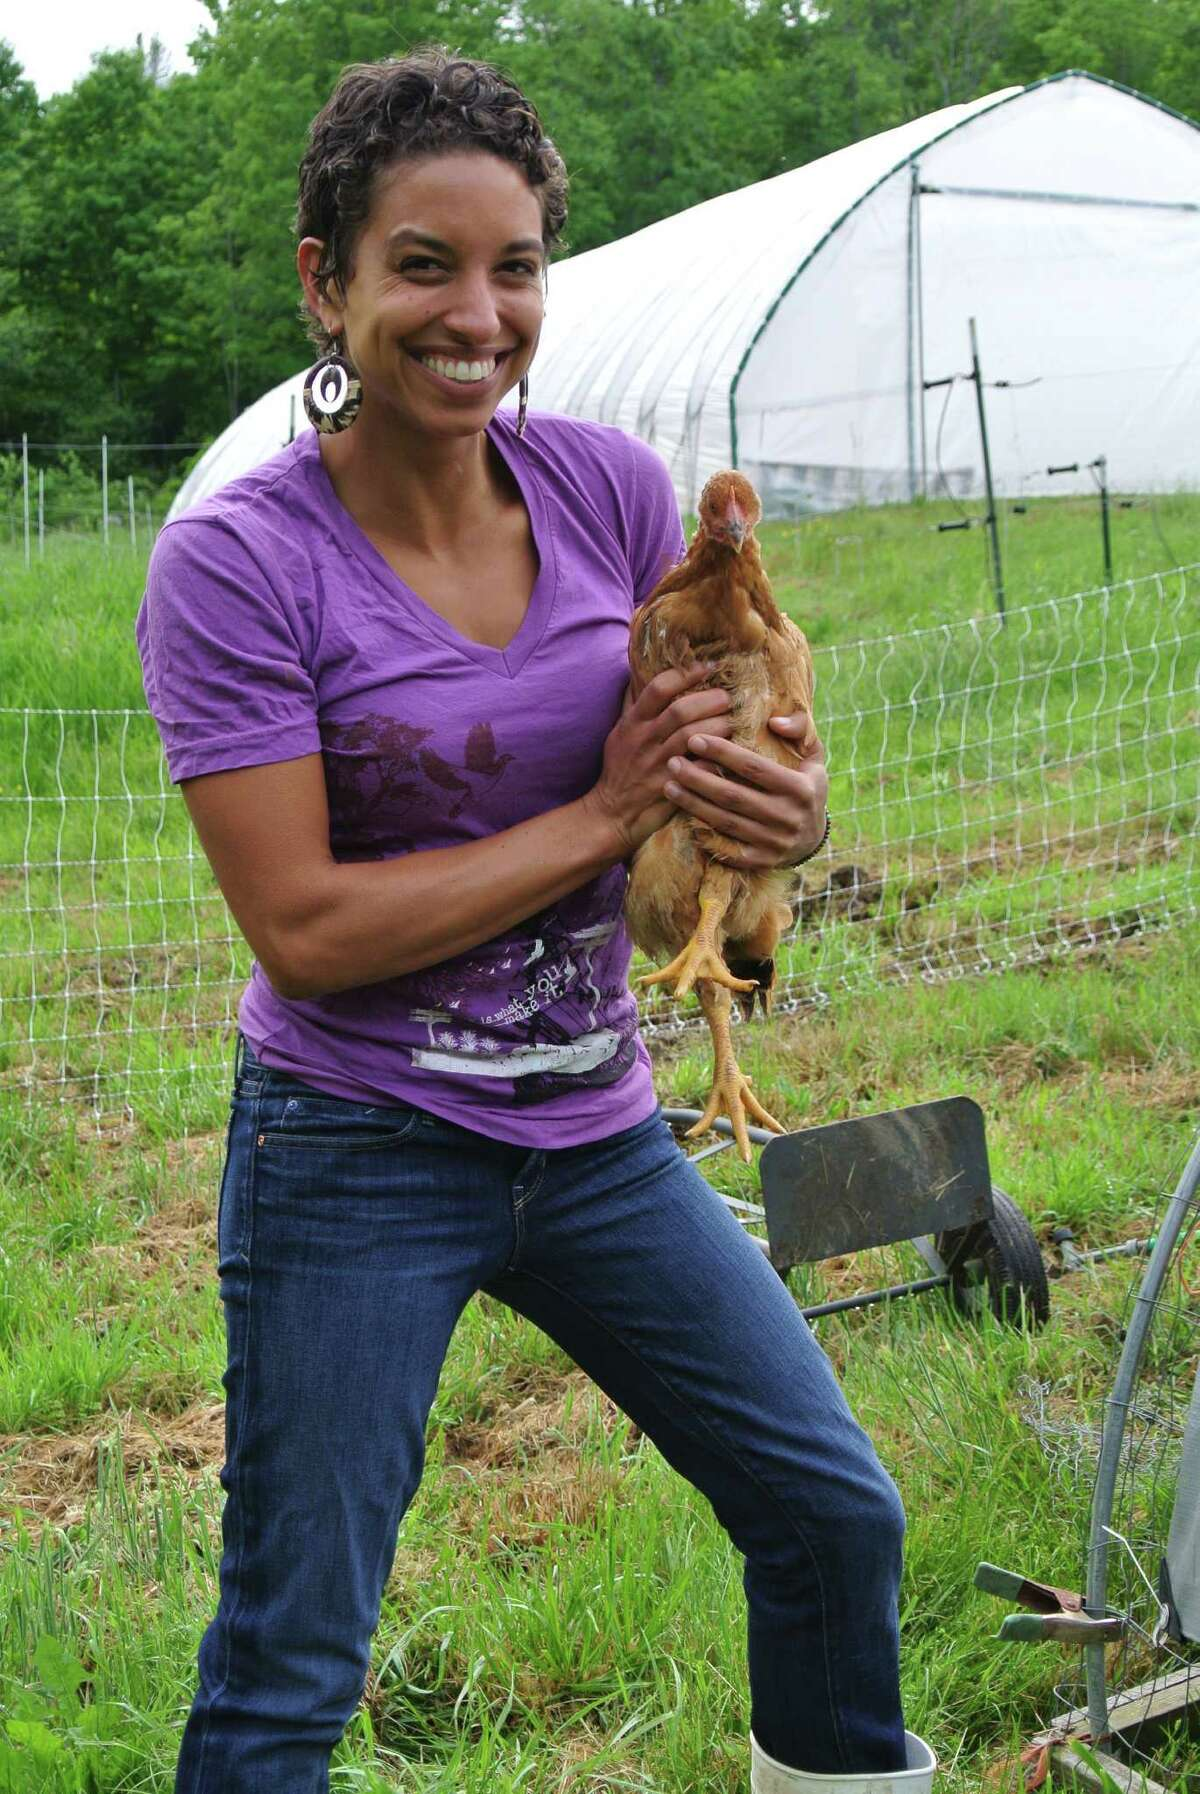 Leah Penniman, co-owner of Soul Fire Farm, poses with a chicken that will be sold for meat at her farm in Grafton. (Deanna Fox)